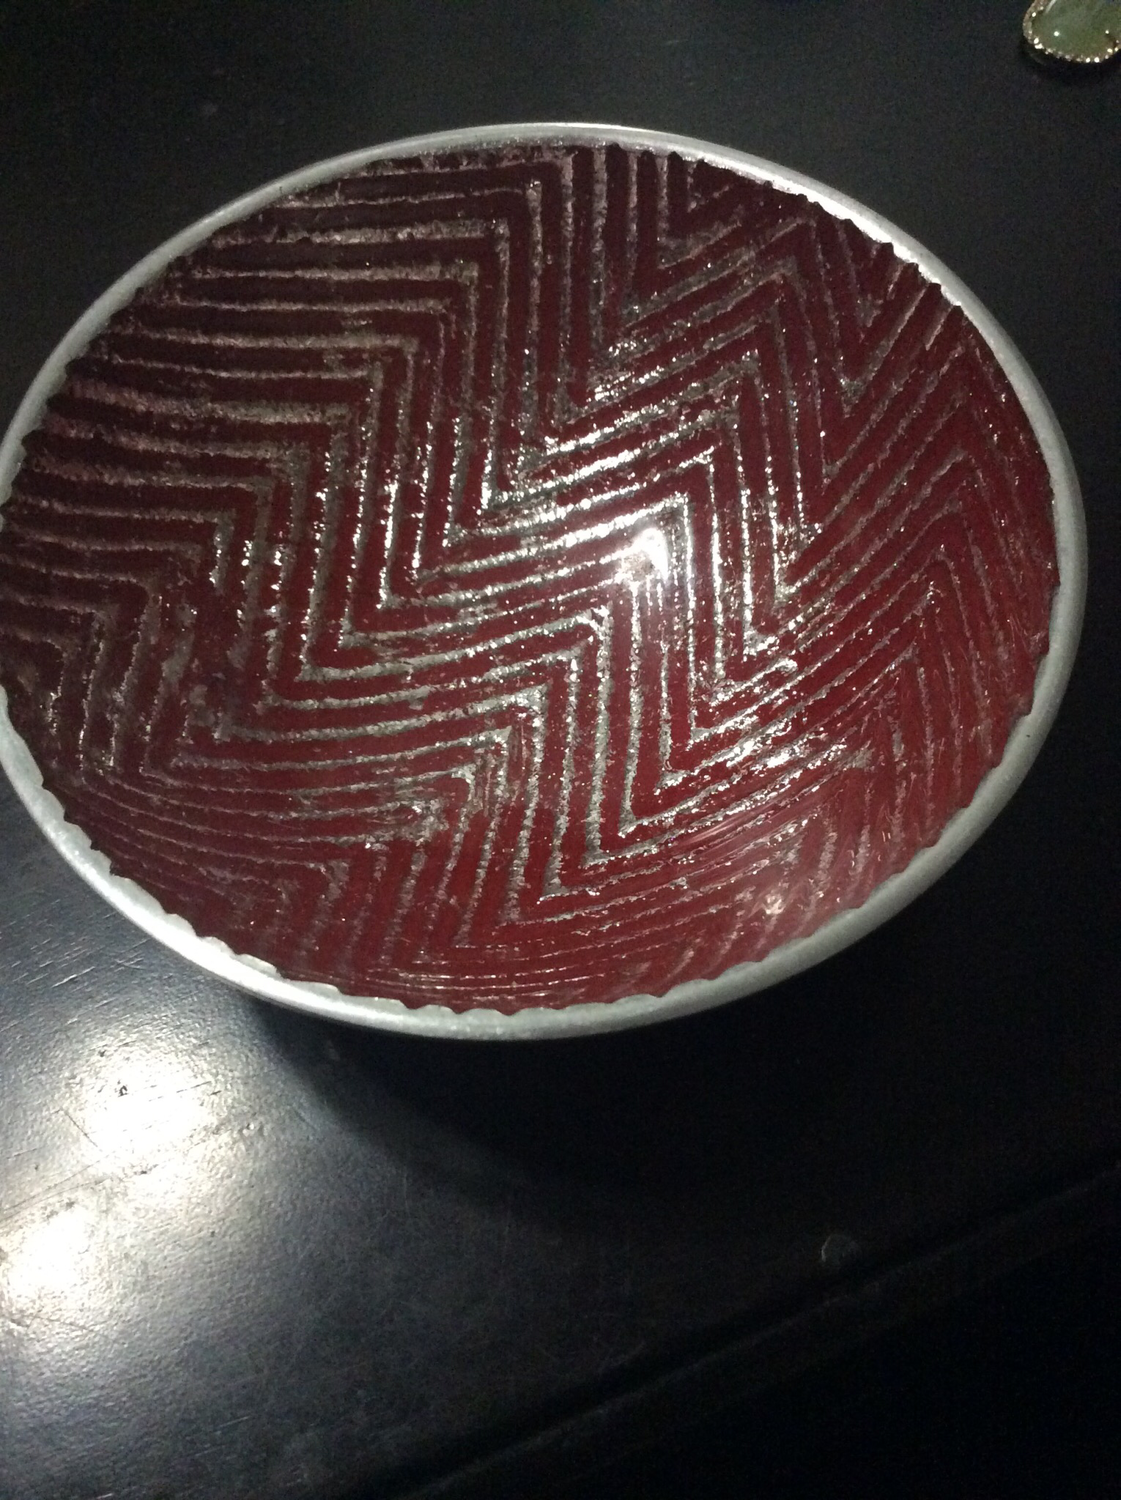 Small Aluminum bowl with red vibrant energy pattern energize atmosphere of thy Dwelling